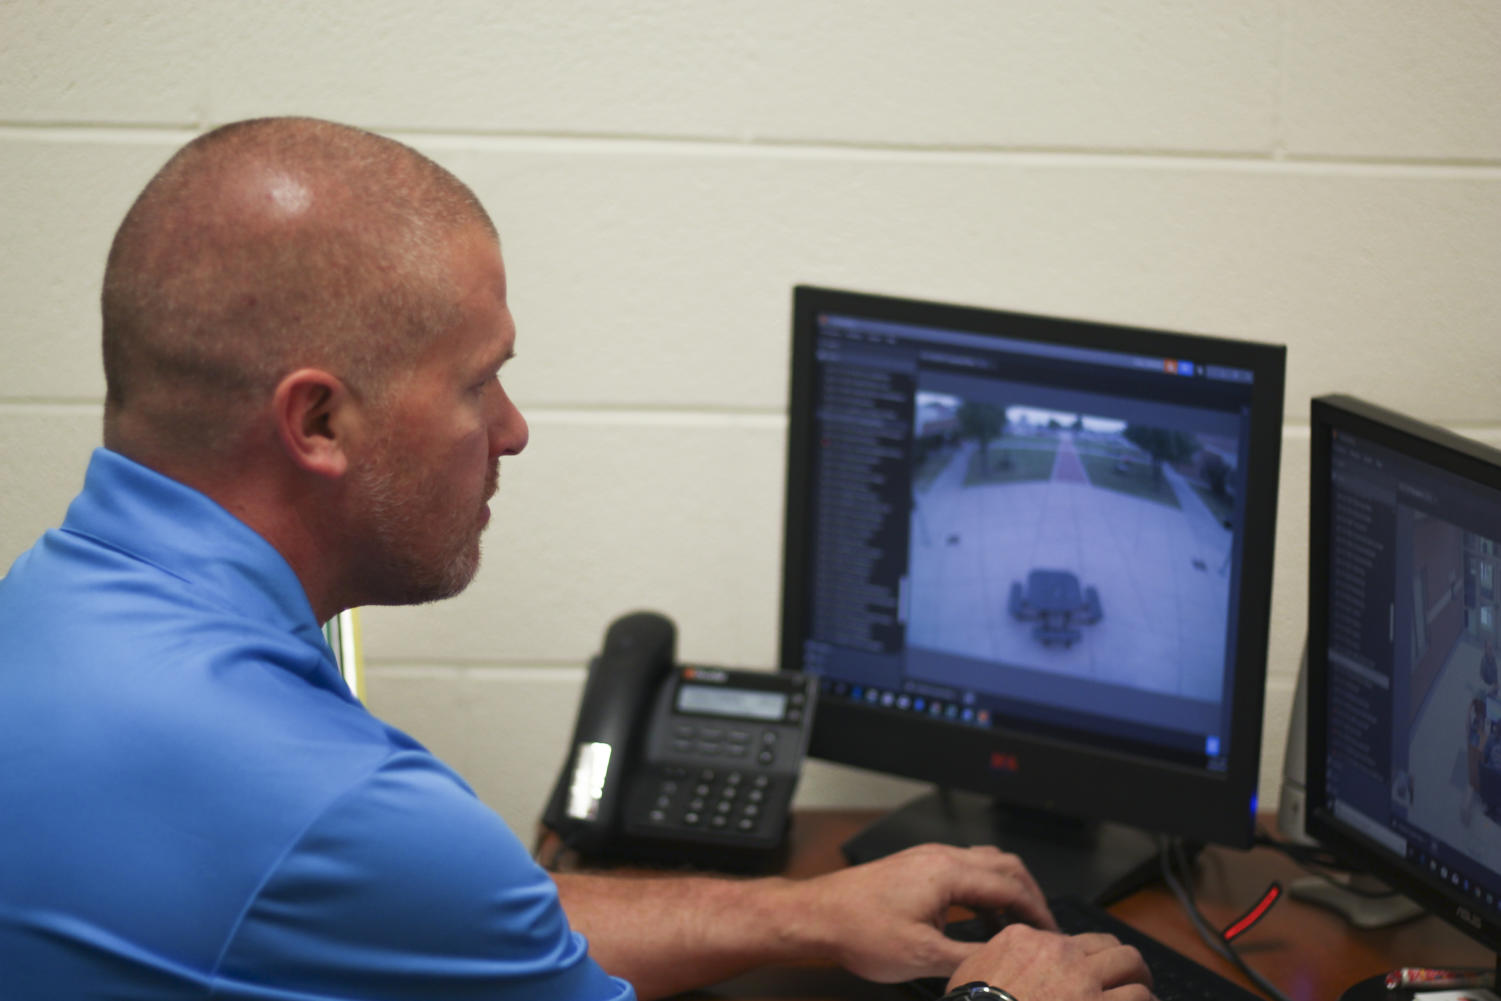 Campus security officer Casey Littlefield monitors the courtyard via security cameras.